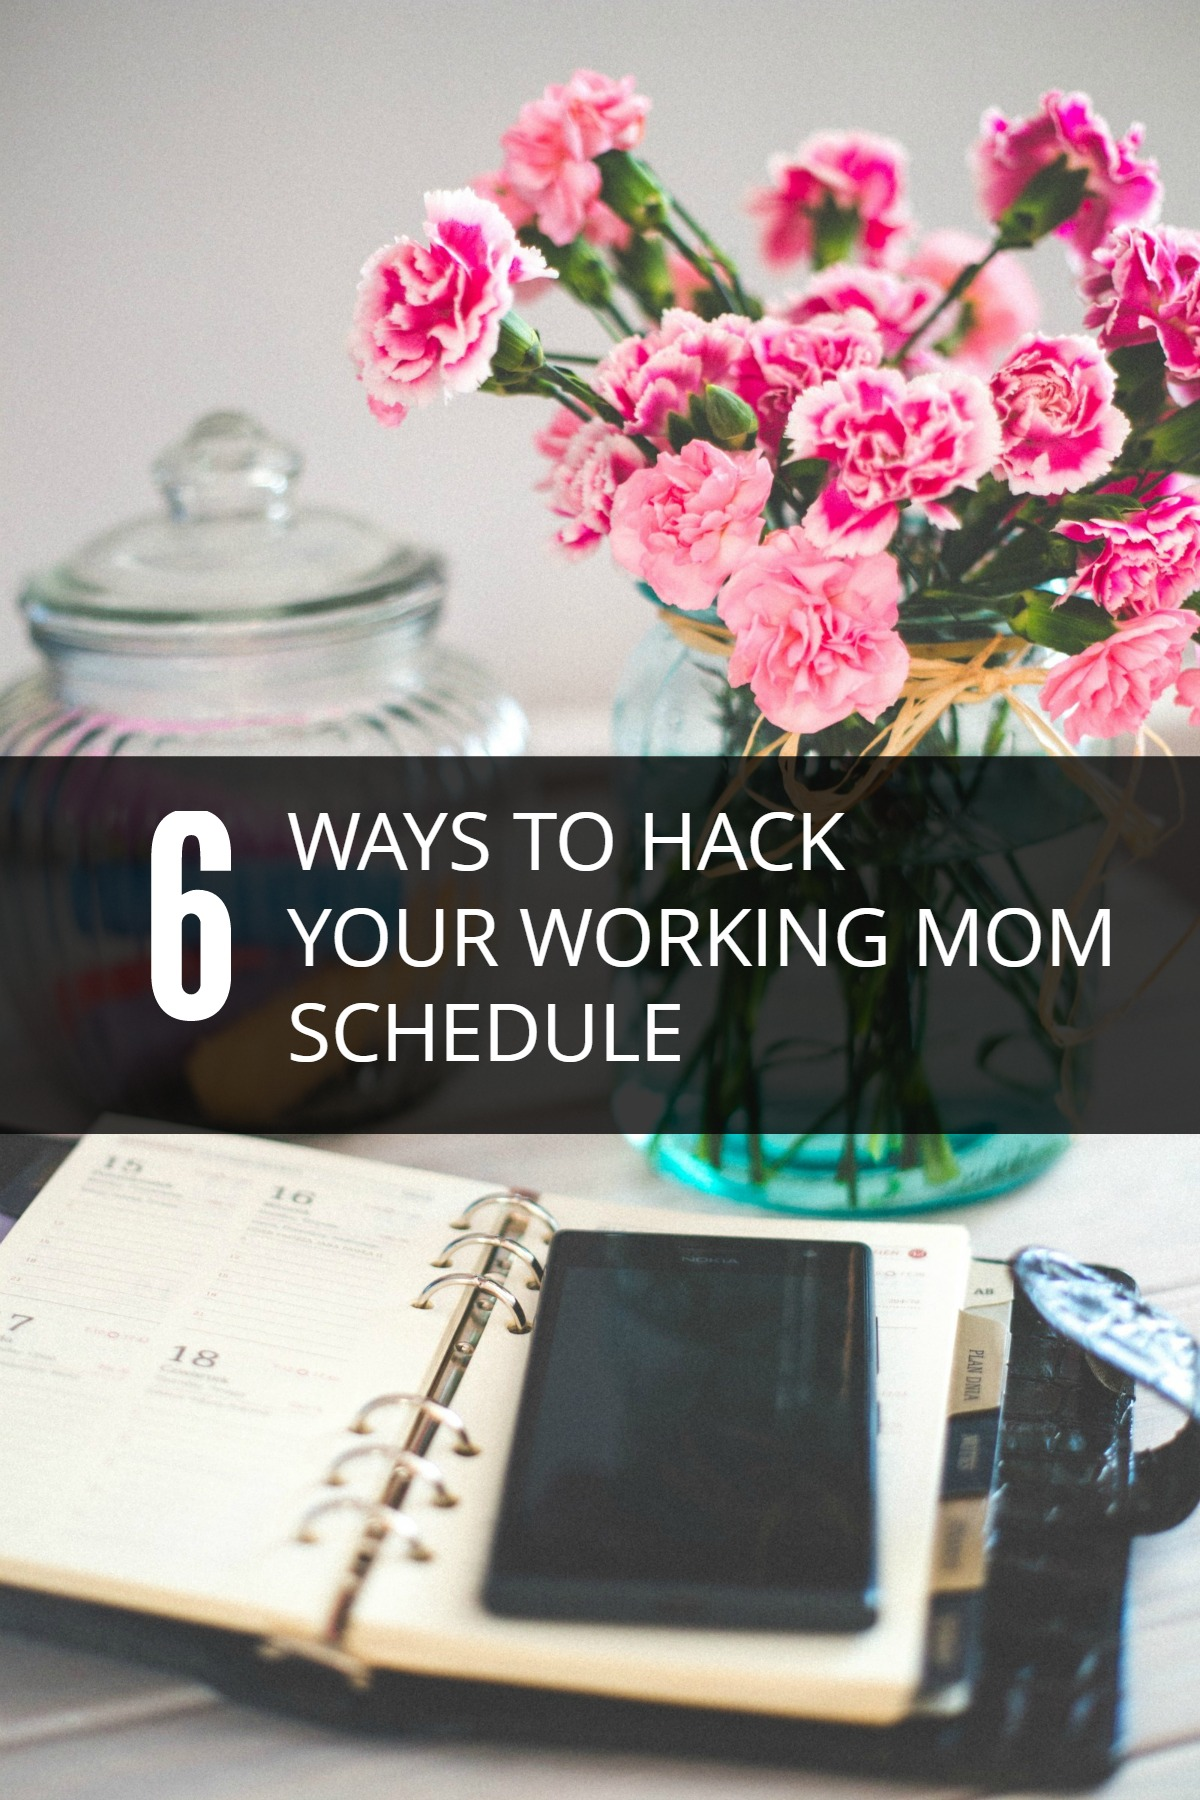 Over the years, I've learned some tricks to create the perfect working mom schedule. And when kids are involved, the schedule is constantly shifting.